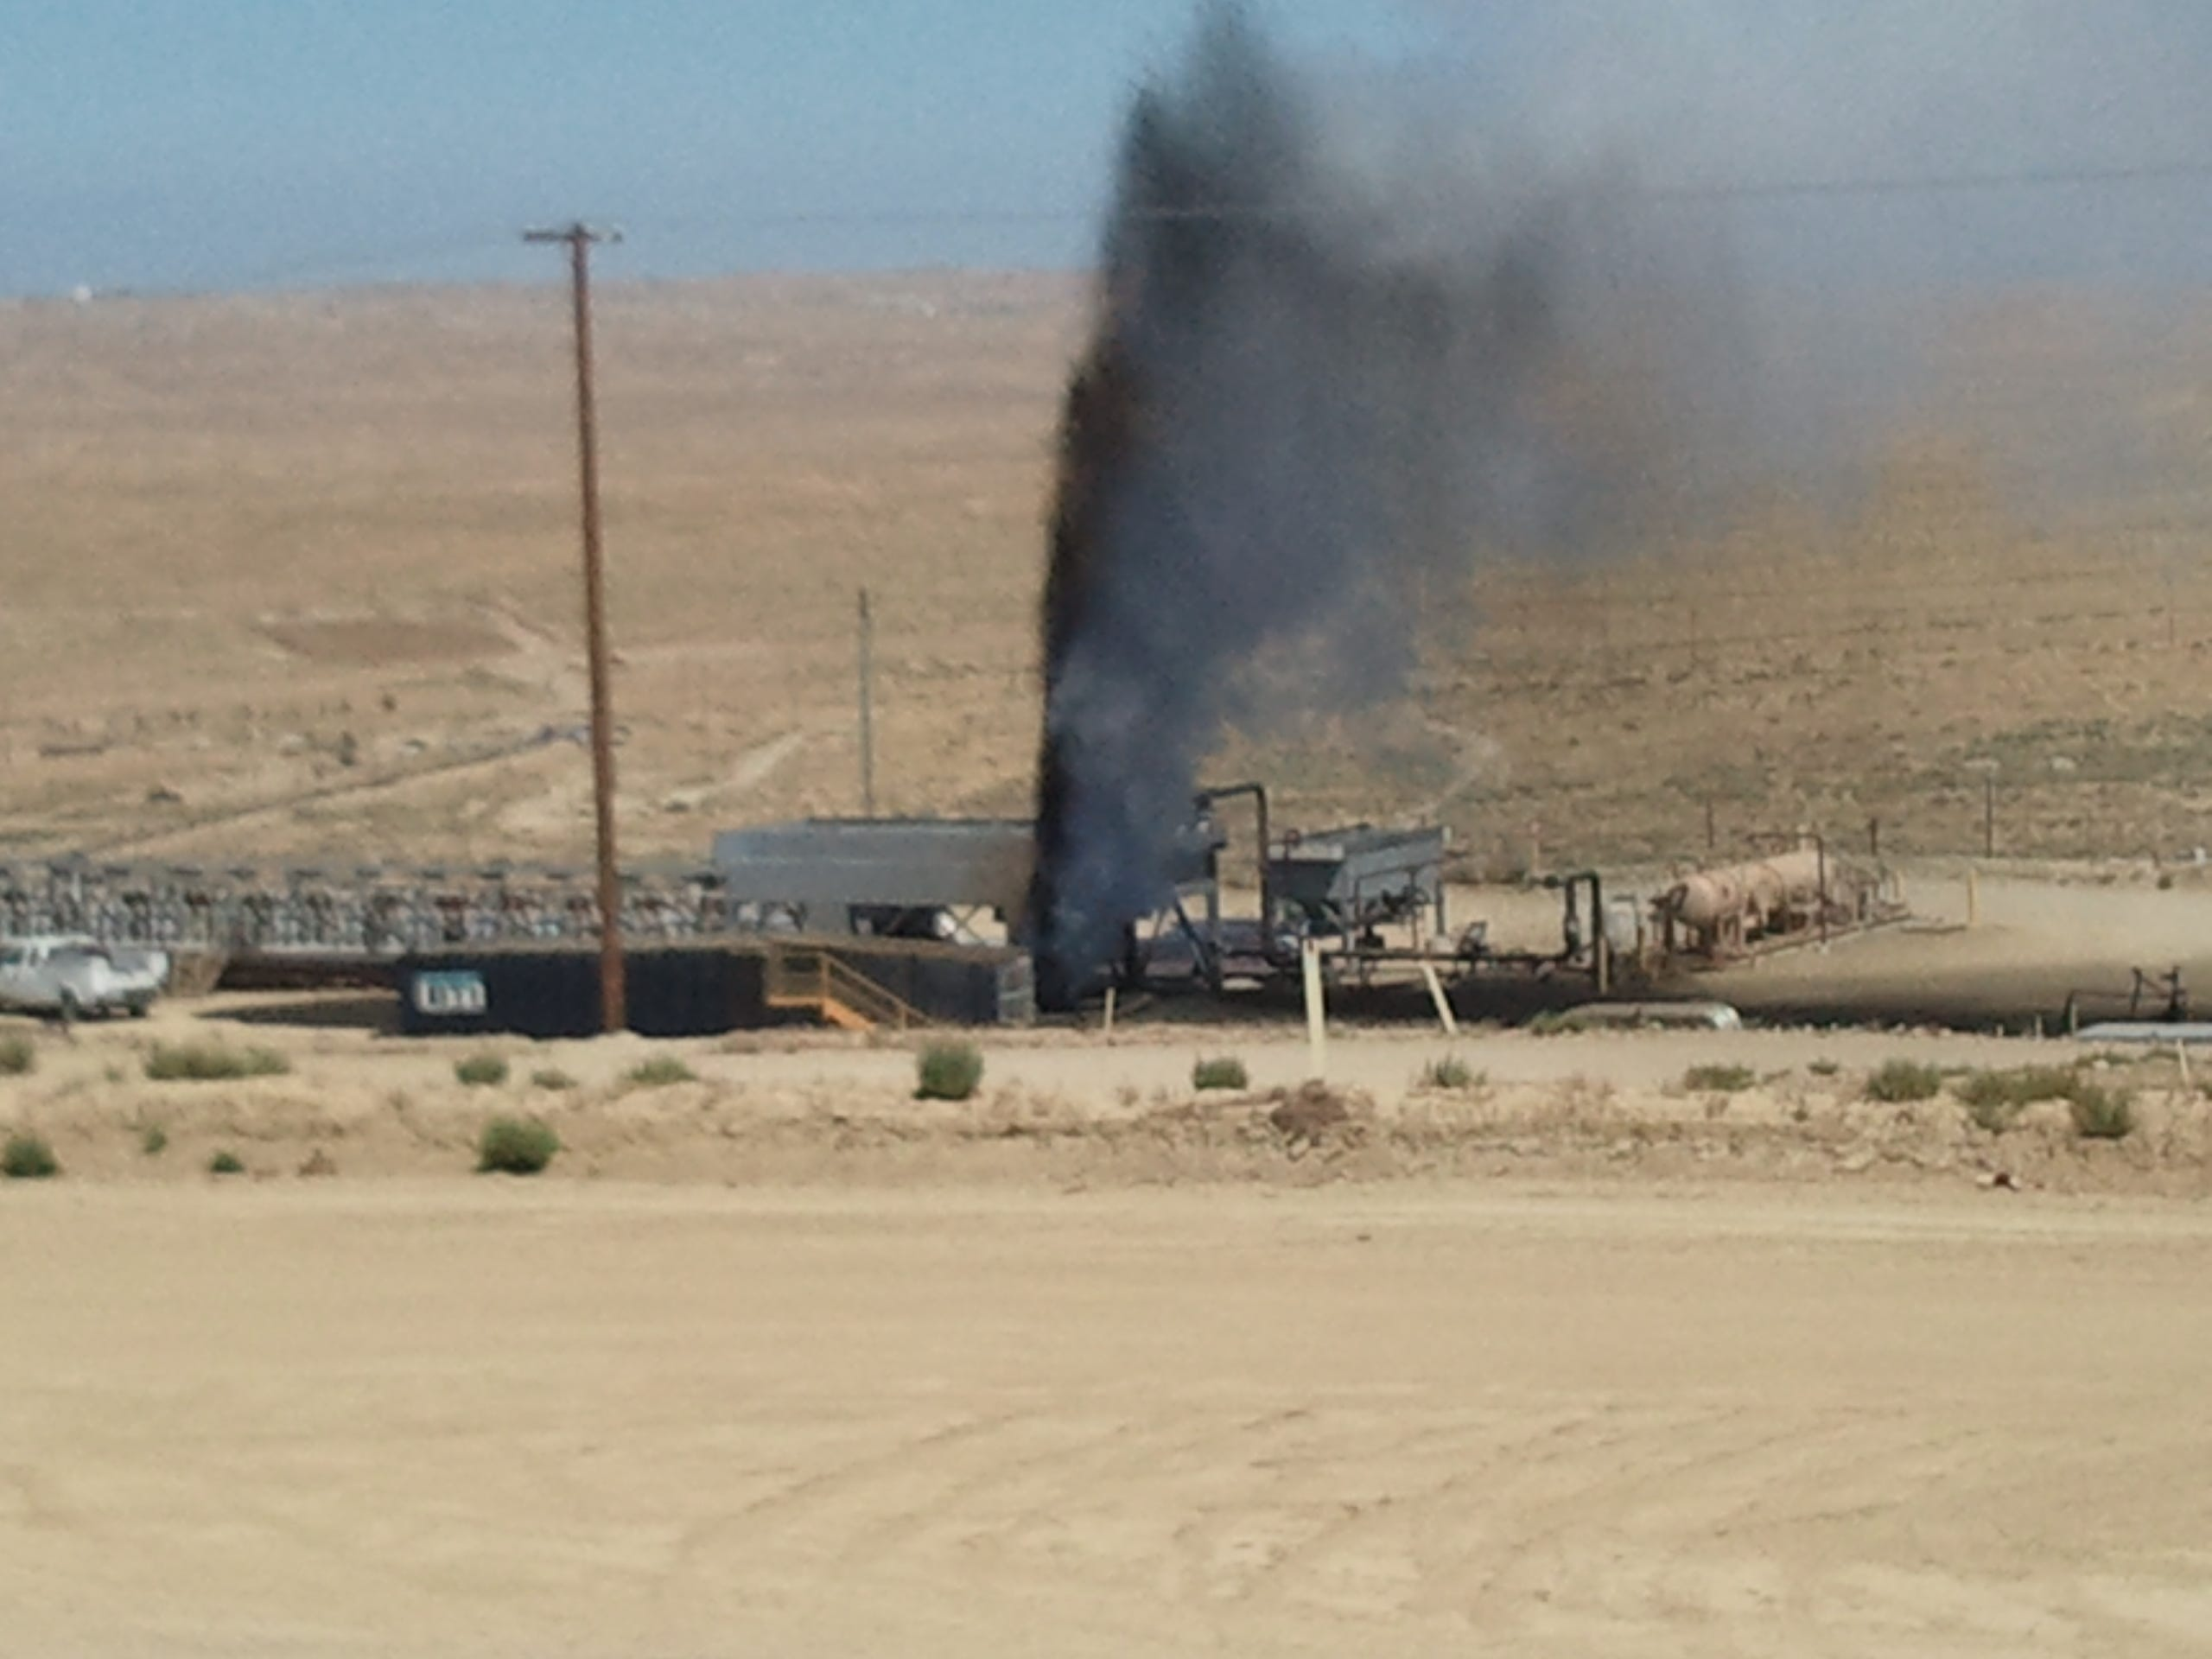 A Berry Petroleum Co. surface expression in the Midway-Sunset Oil Field in August 2011.